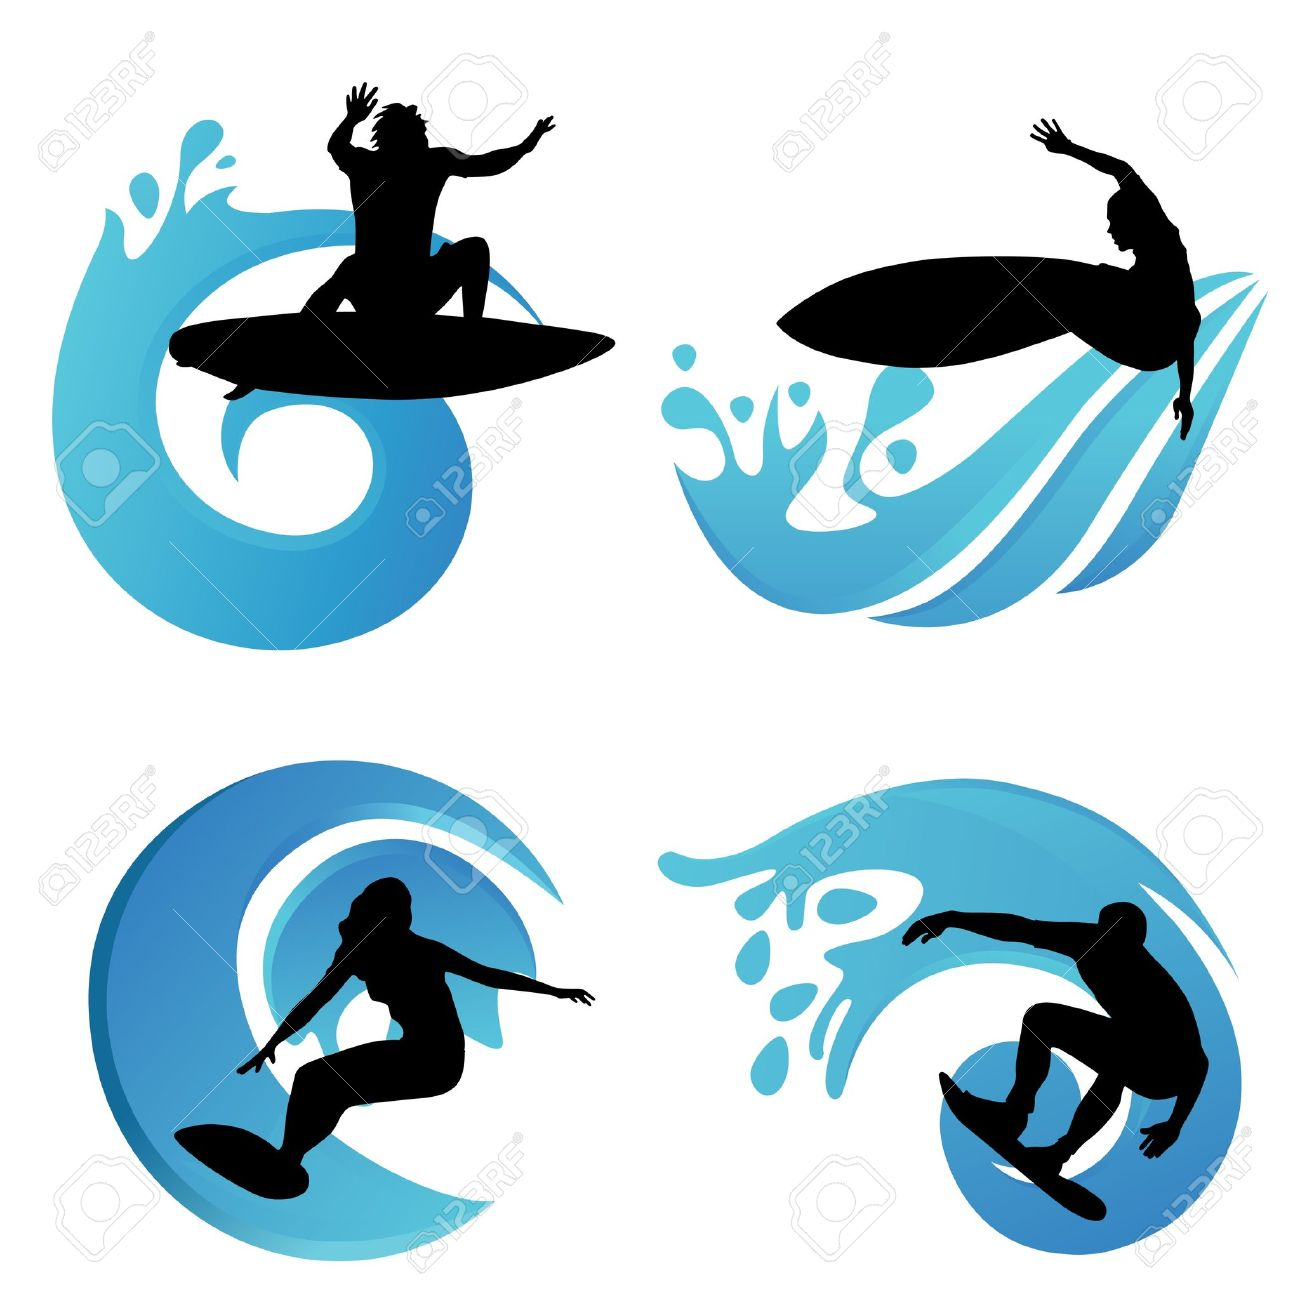 12,068 Surfboard Stock Vector Illustration And Royalty Free.